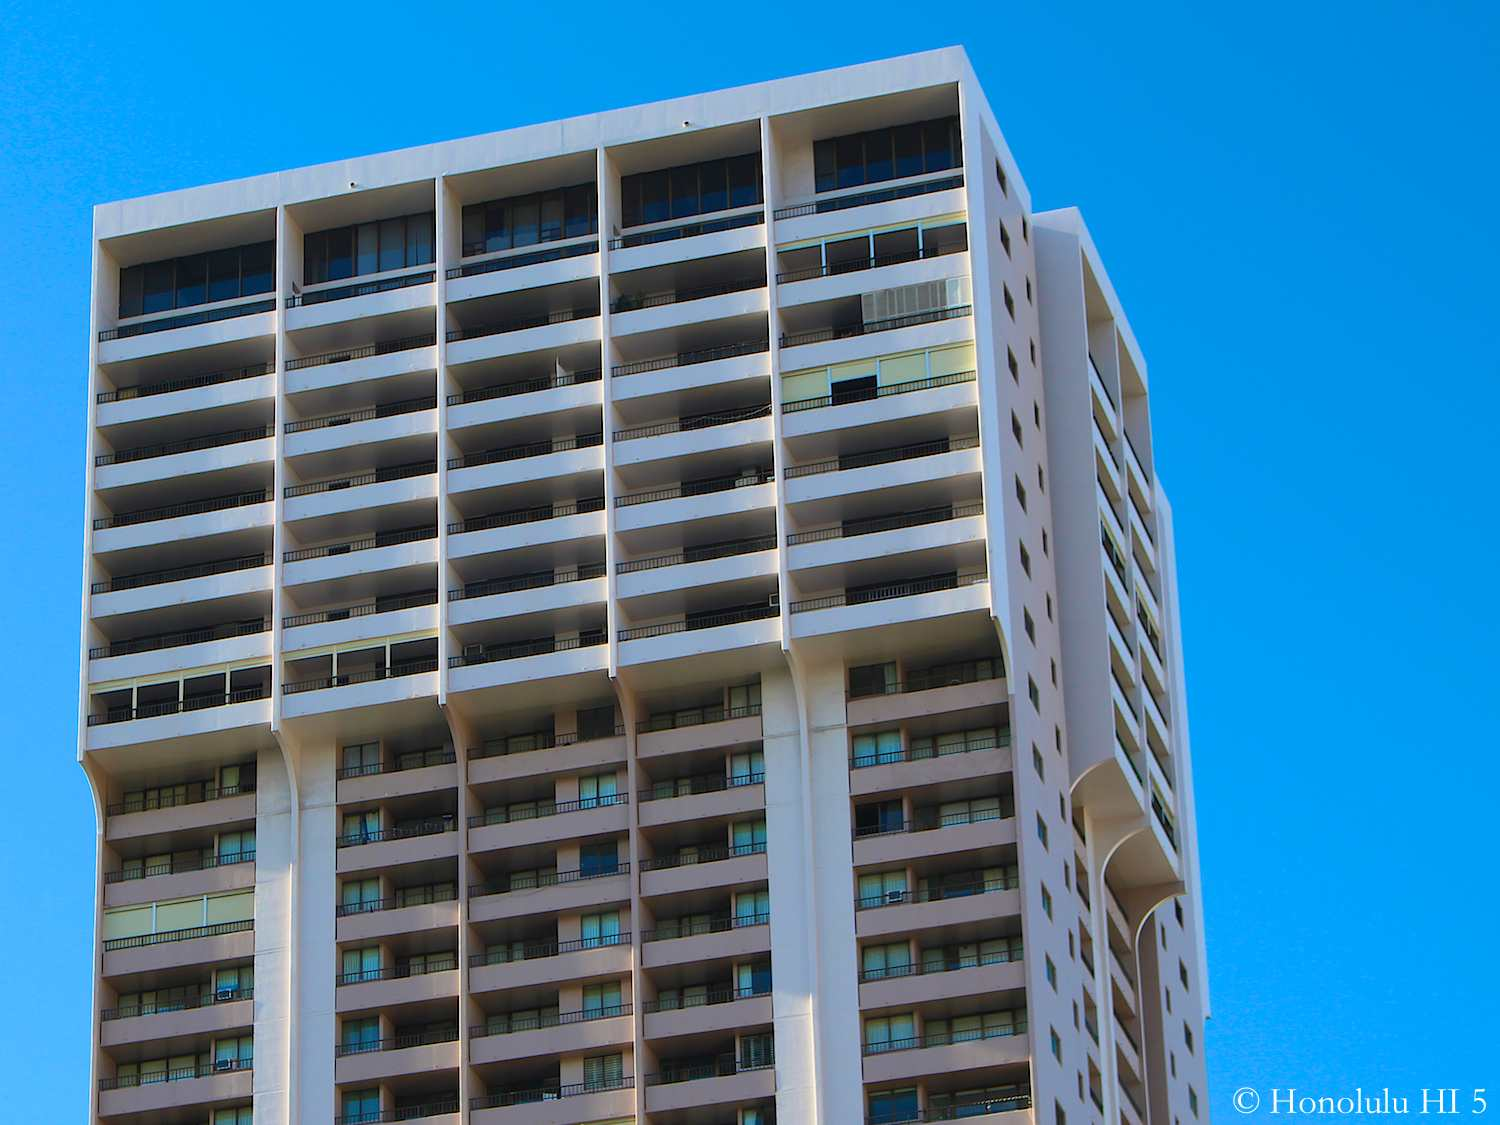 Top Floors of Royal Kuhio Condos Seen From Outside